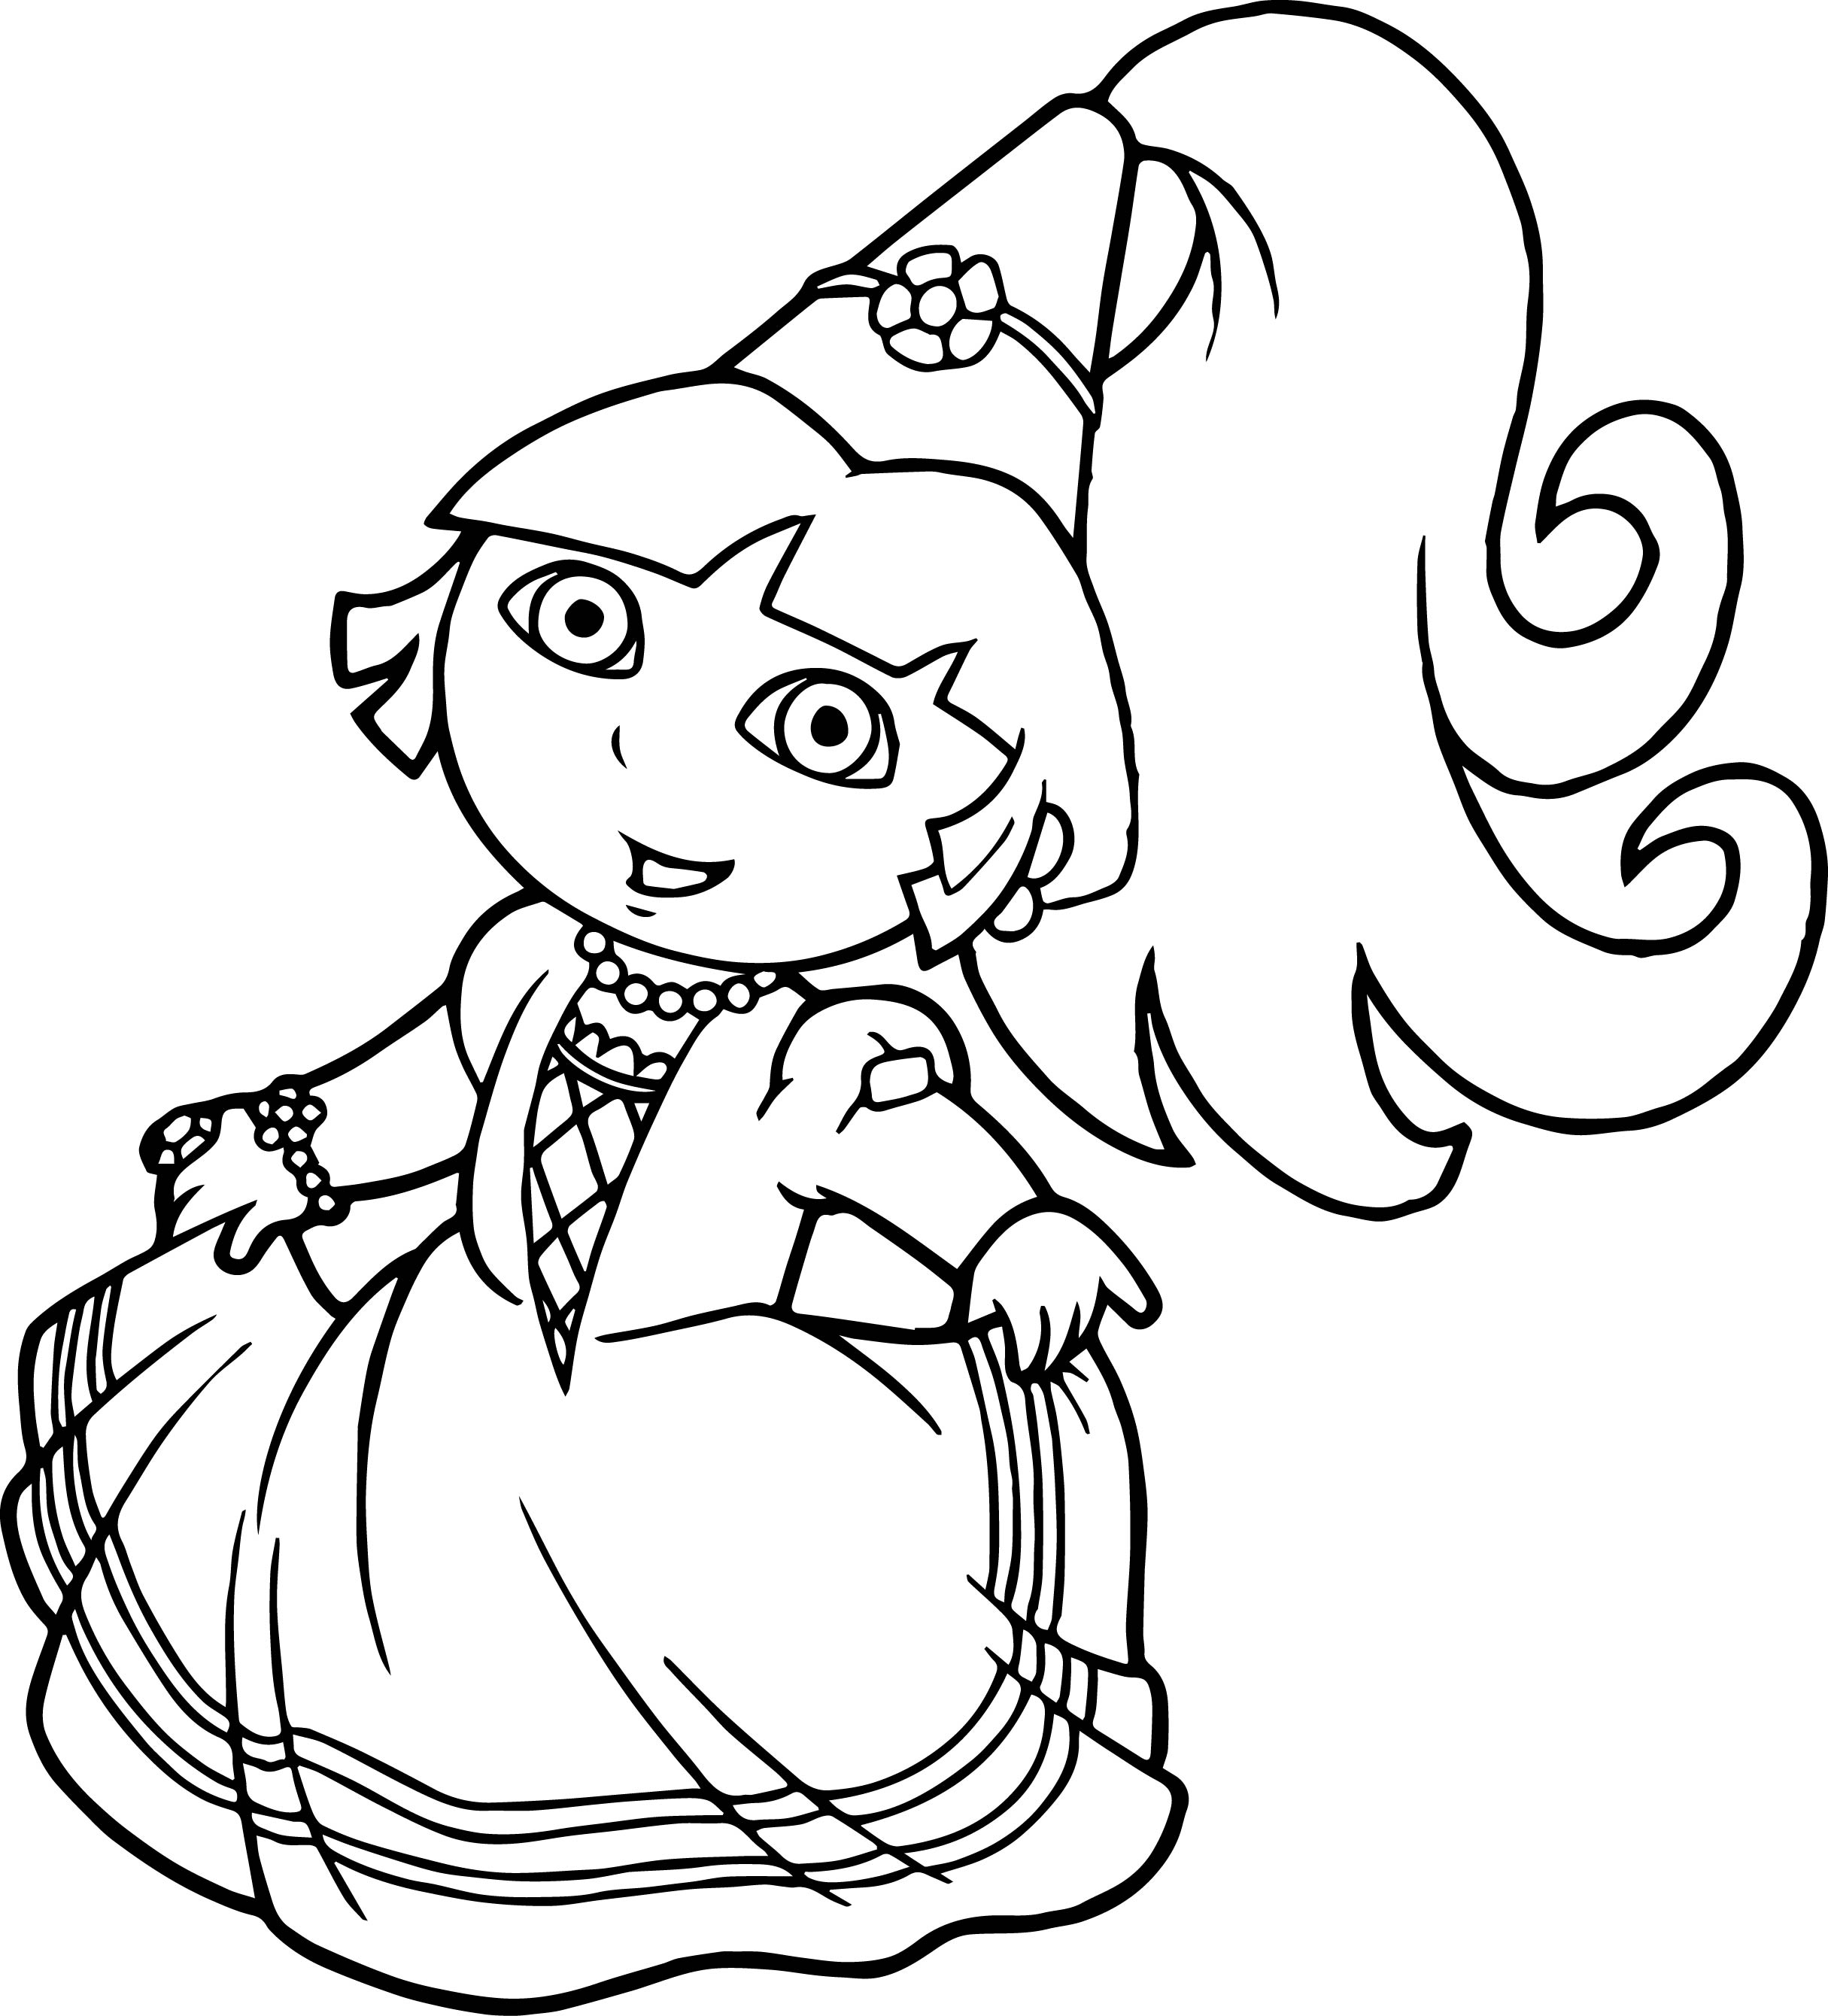 coloring pages dora princess - photo#1